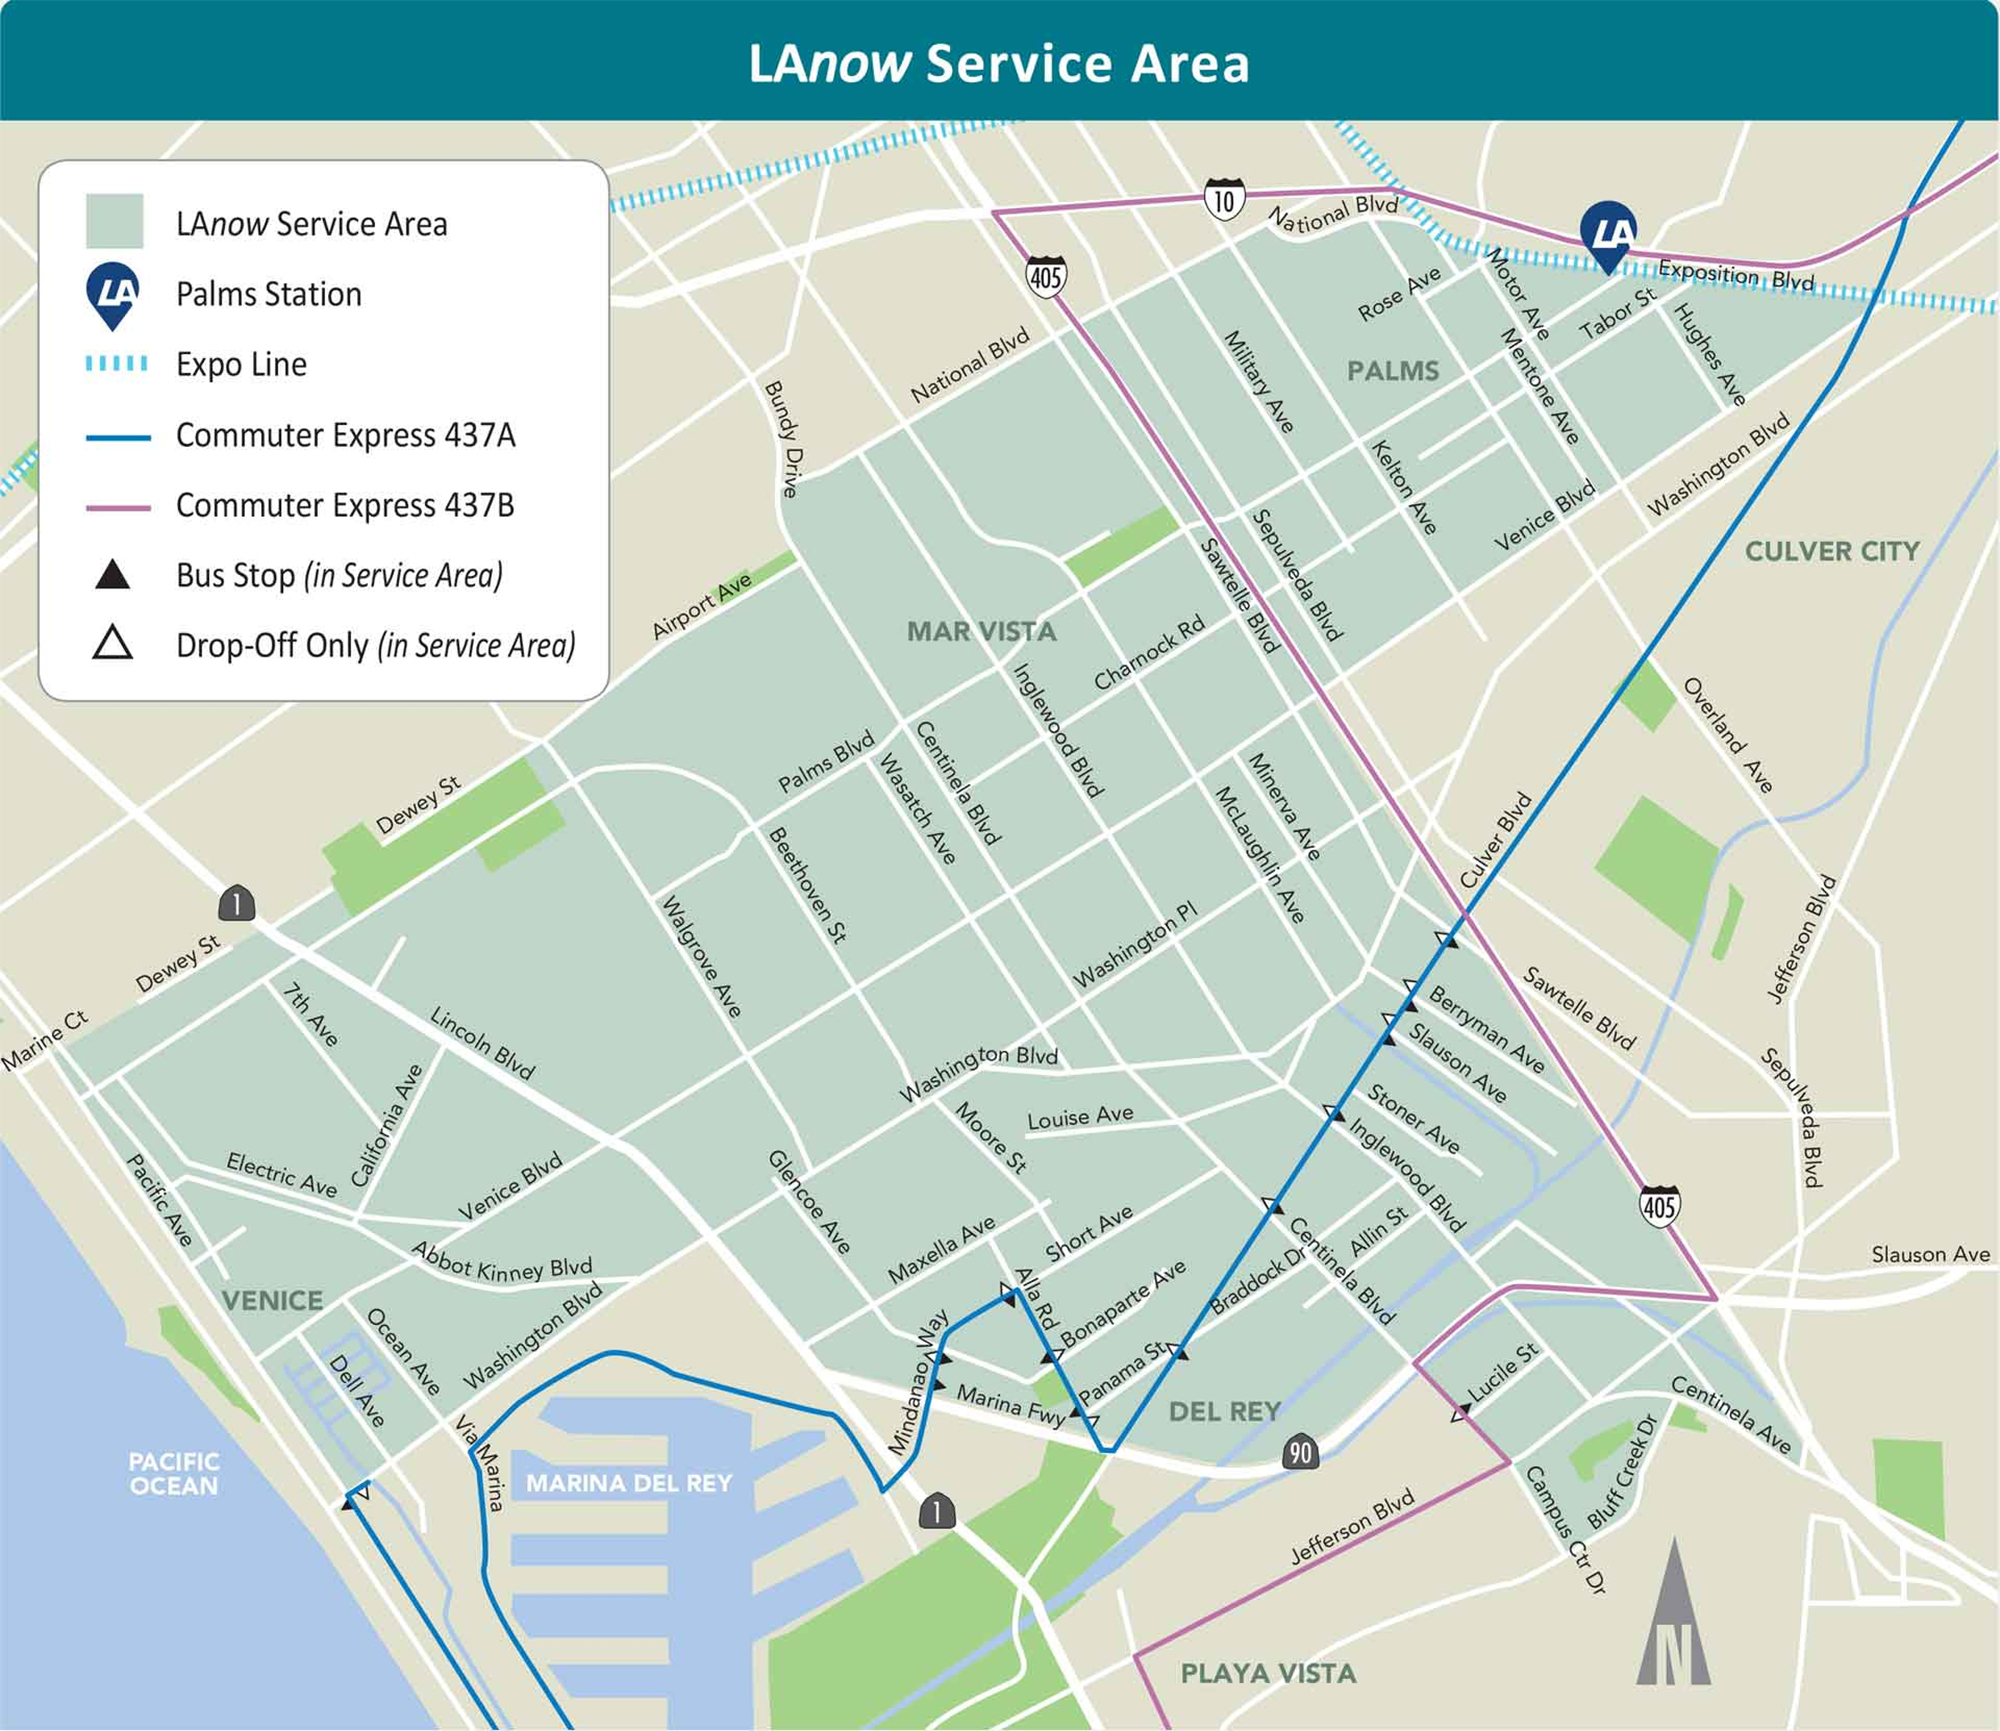 LaNow Services Areas map